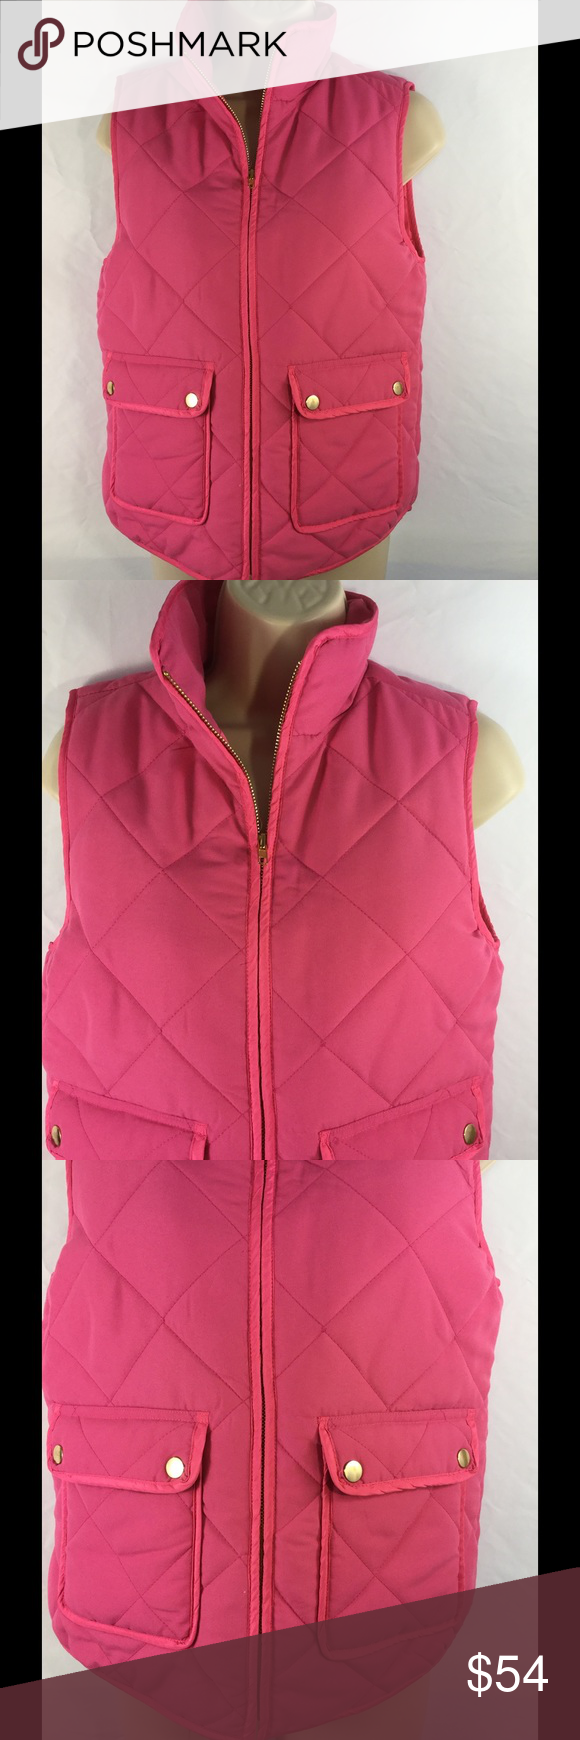 """Dee Elle pink zip front puffy vest..NWT Measures small...34"""" bust..24"""" length 100% polyester and lining..new with tags Dee elle Jackets & Coats Vests"""